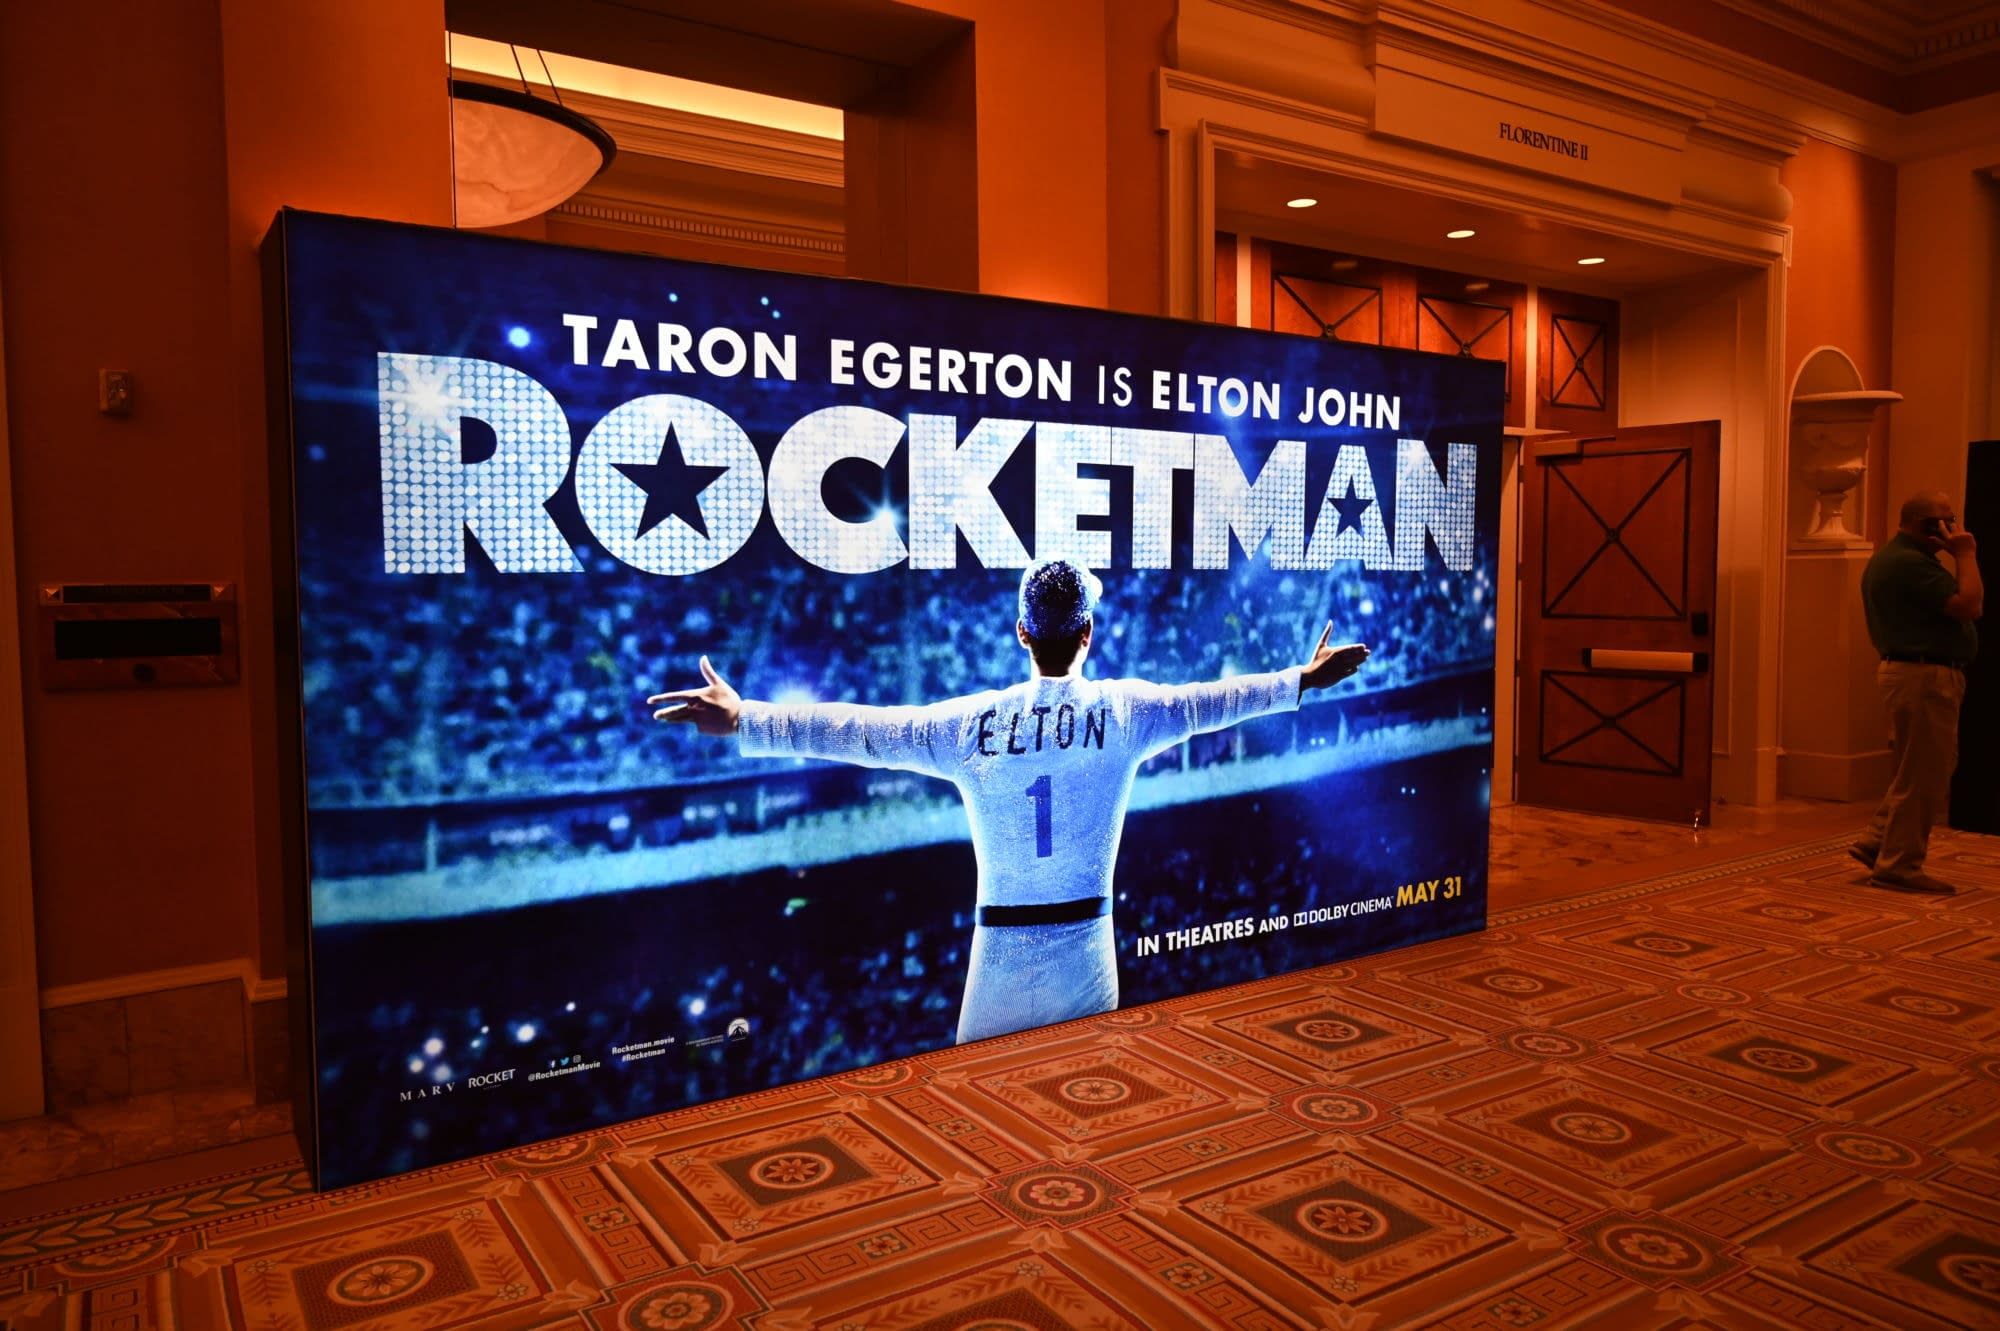 [CinemaCon 2019] Elton John Embraces the Crowd in a New Rocketman Standee